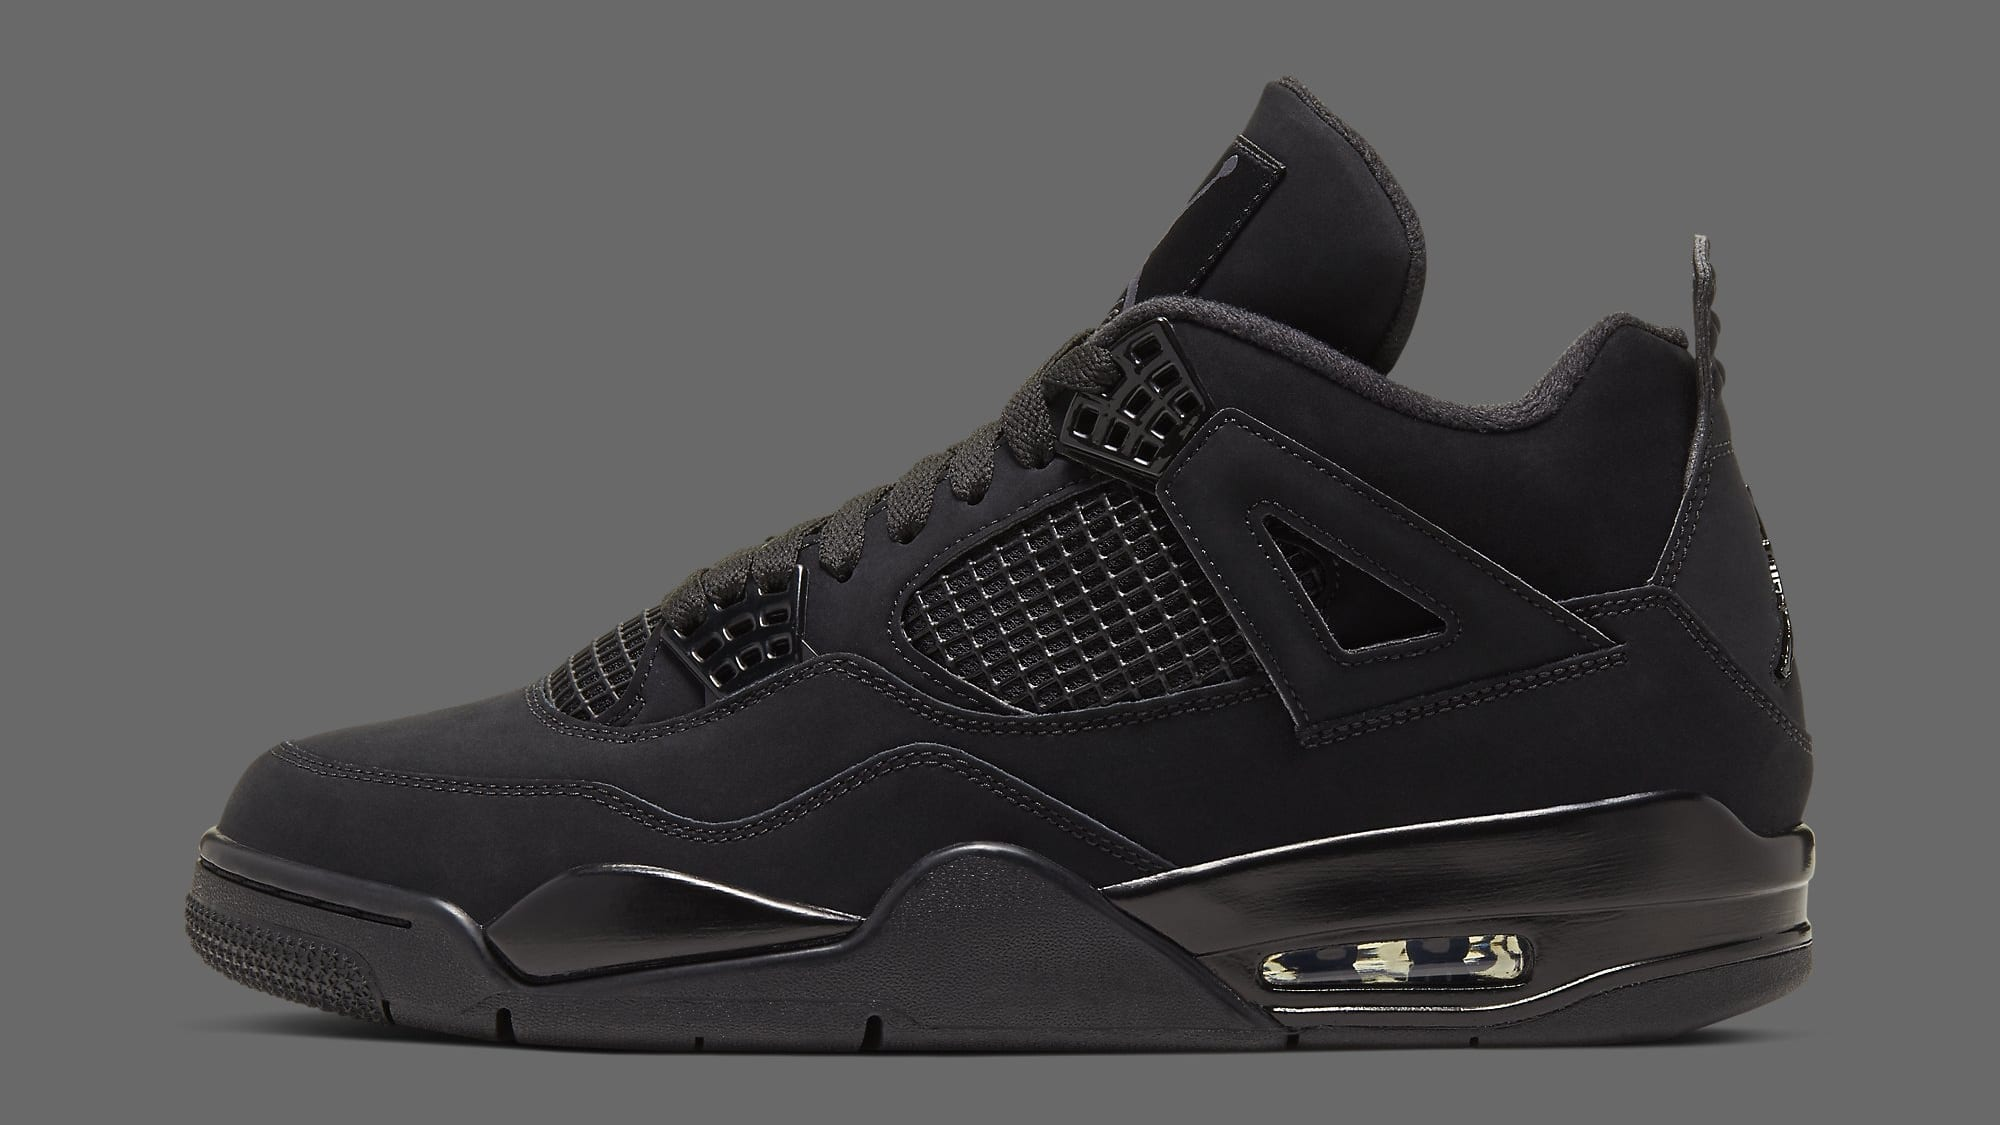 air-jordan-4-iv-retro-black-cat-2020-cu1110-010-lateral